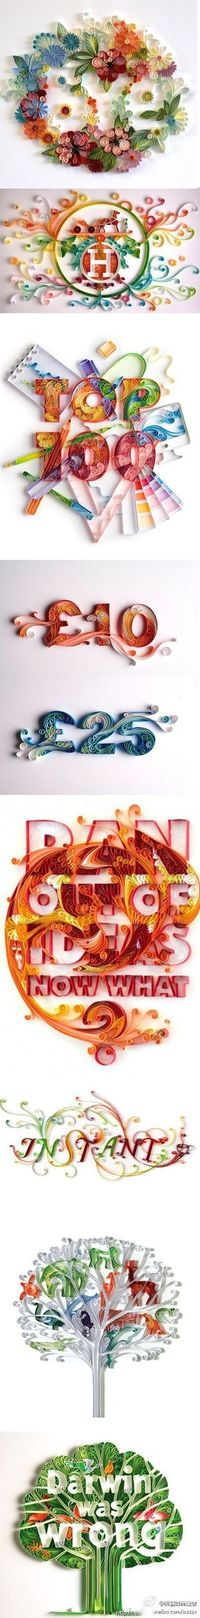 this paper quilling thing is SO cool!!! tricky, but cool!